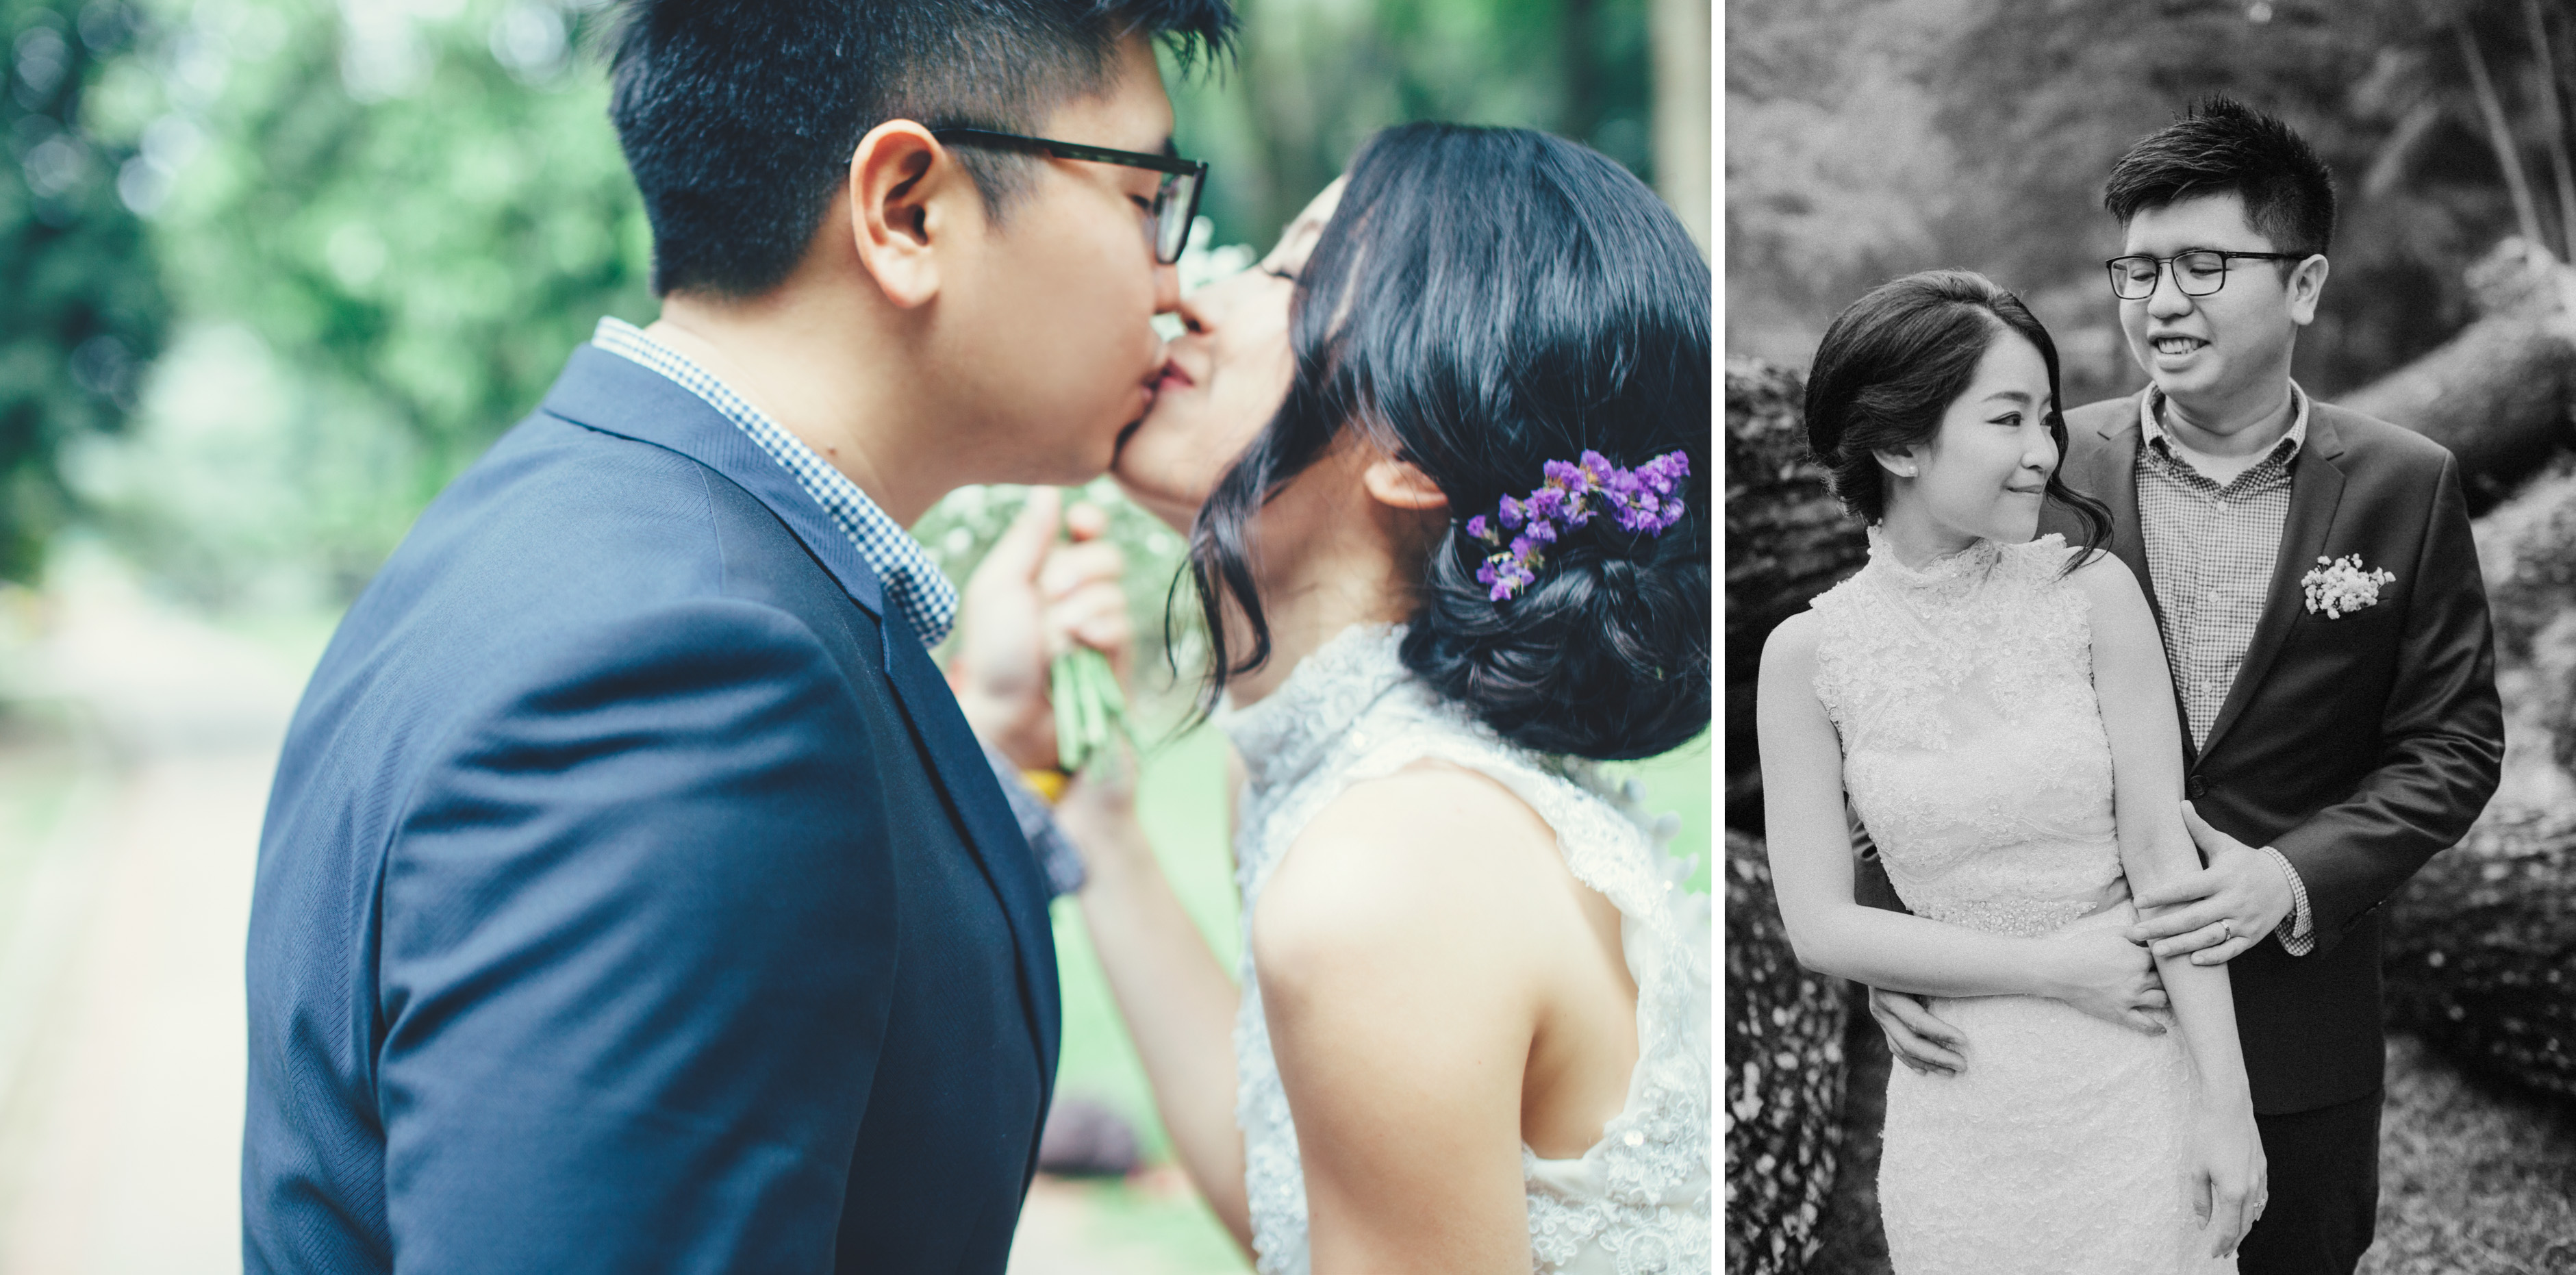 2-hellojanelee-malaysia-wedding-photographer-lake-garden-tinajackson-prewedding